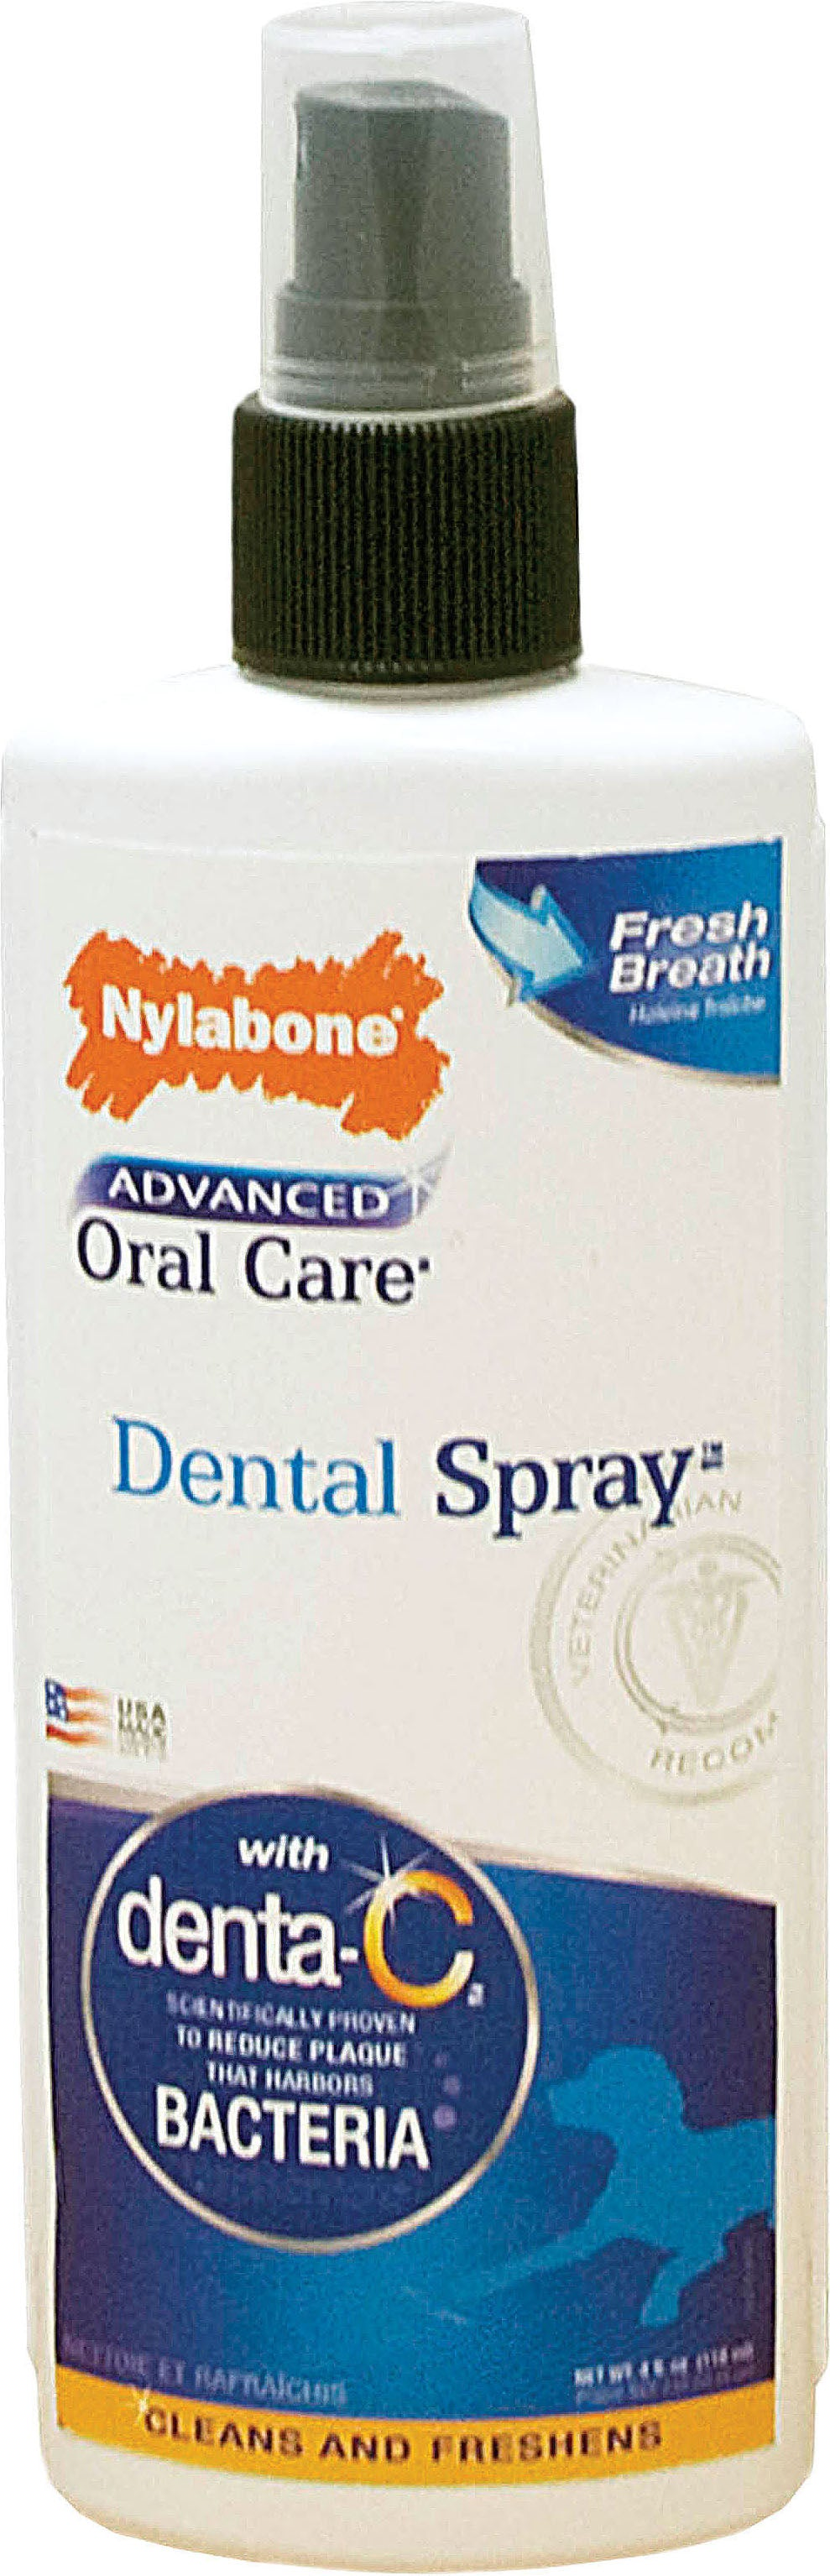 Advanced Oral Care Dental Spray With Delta-c